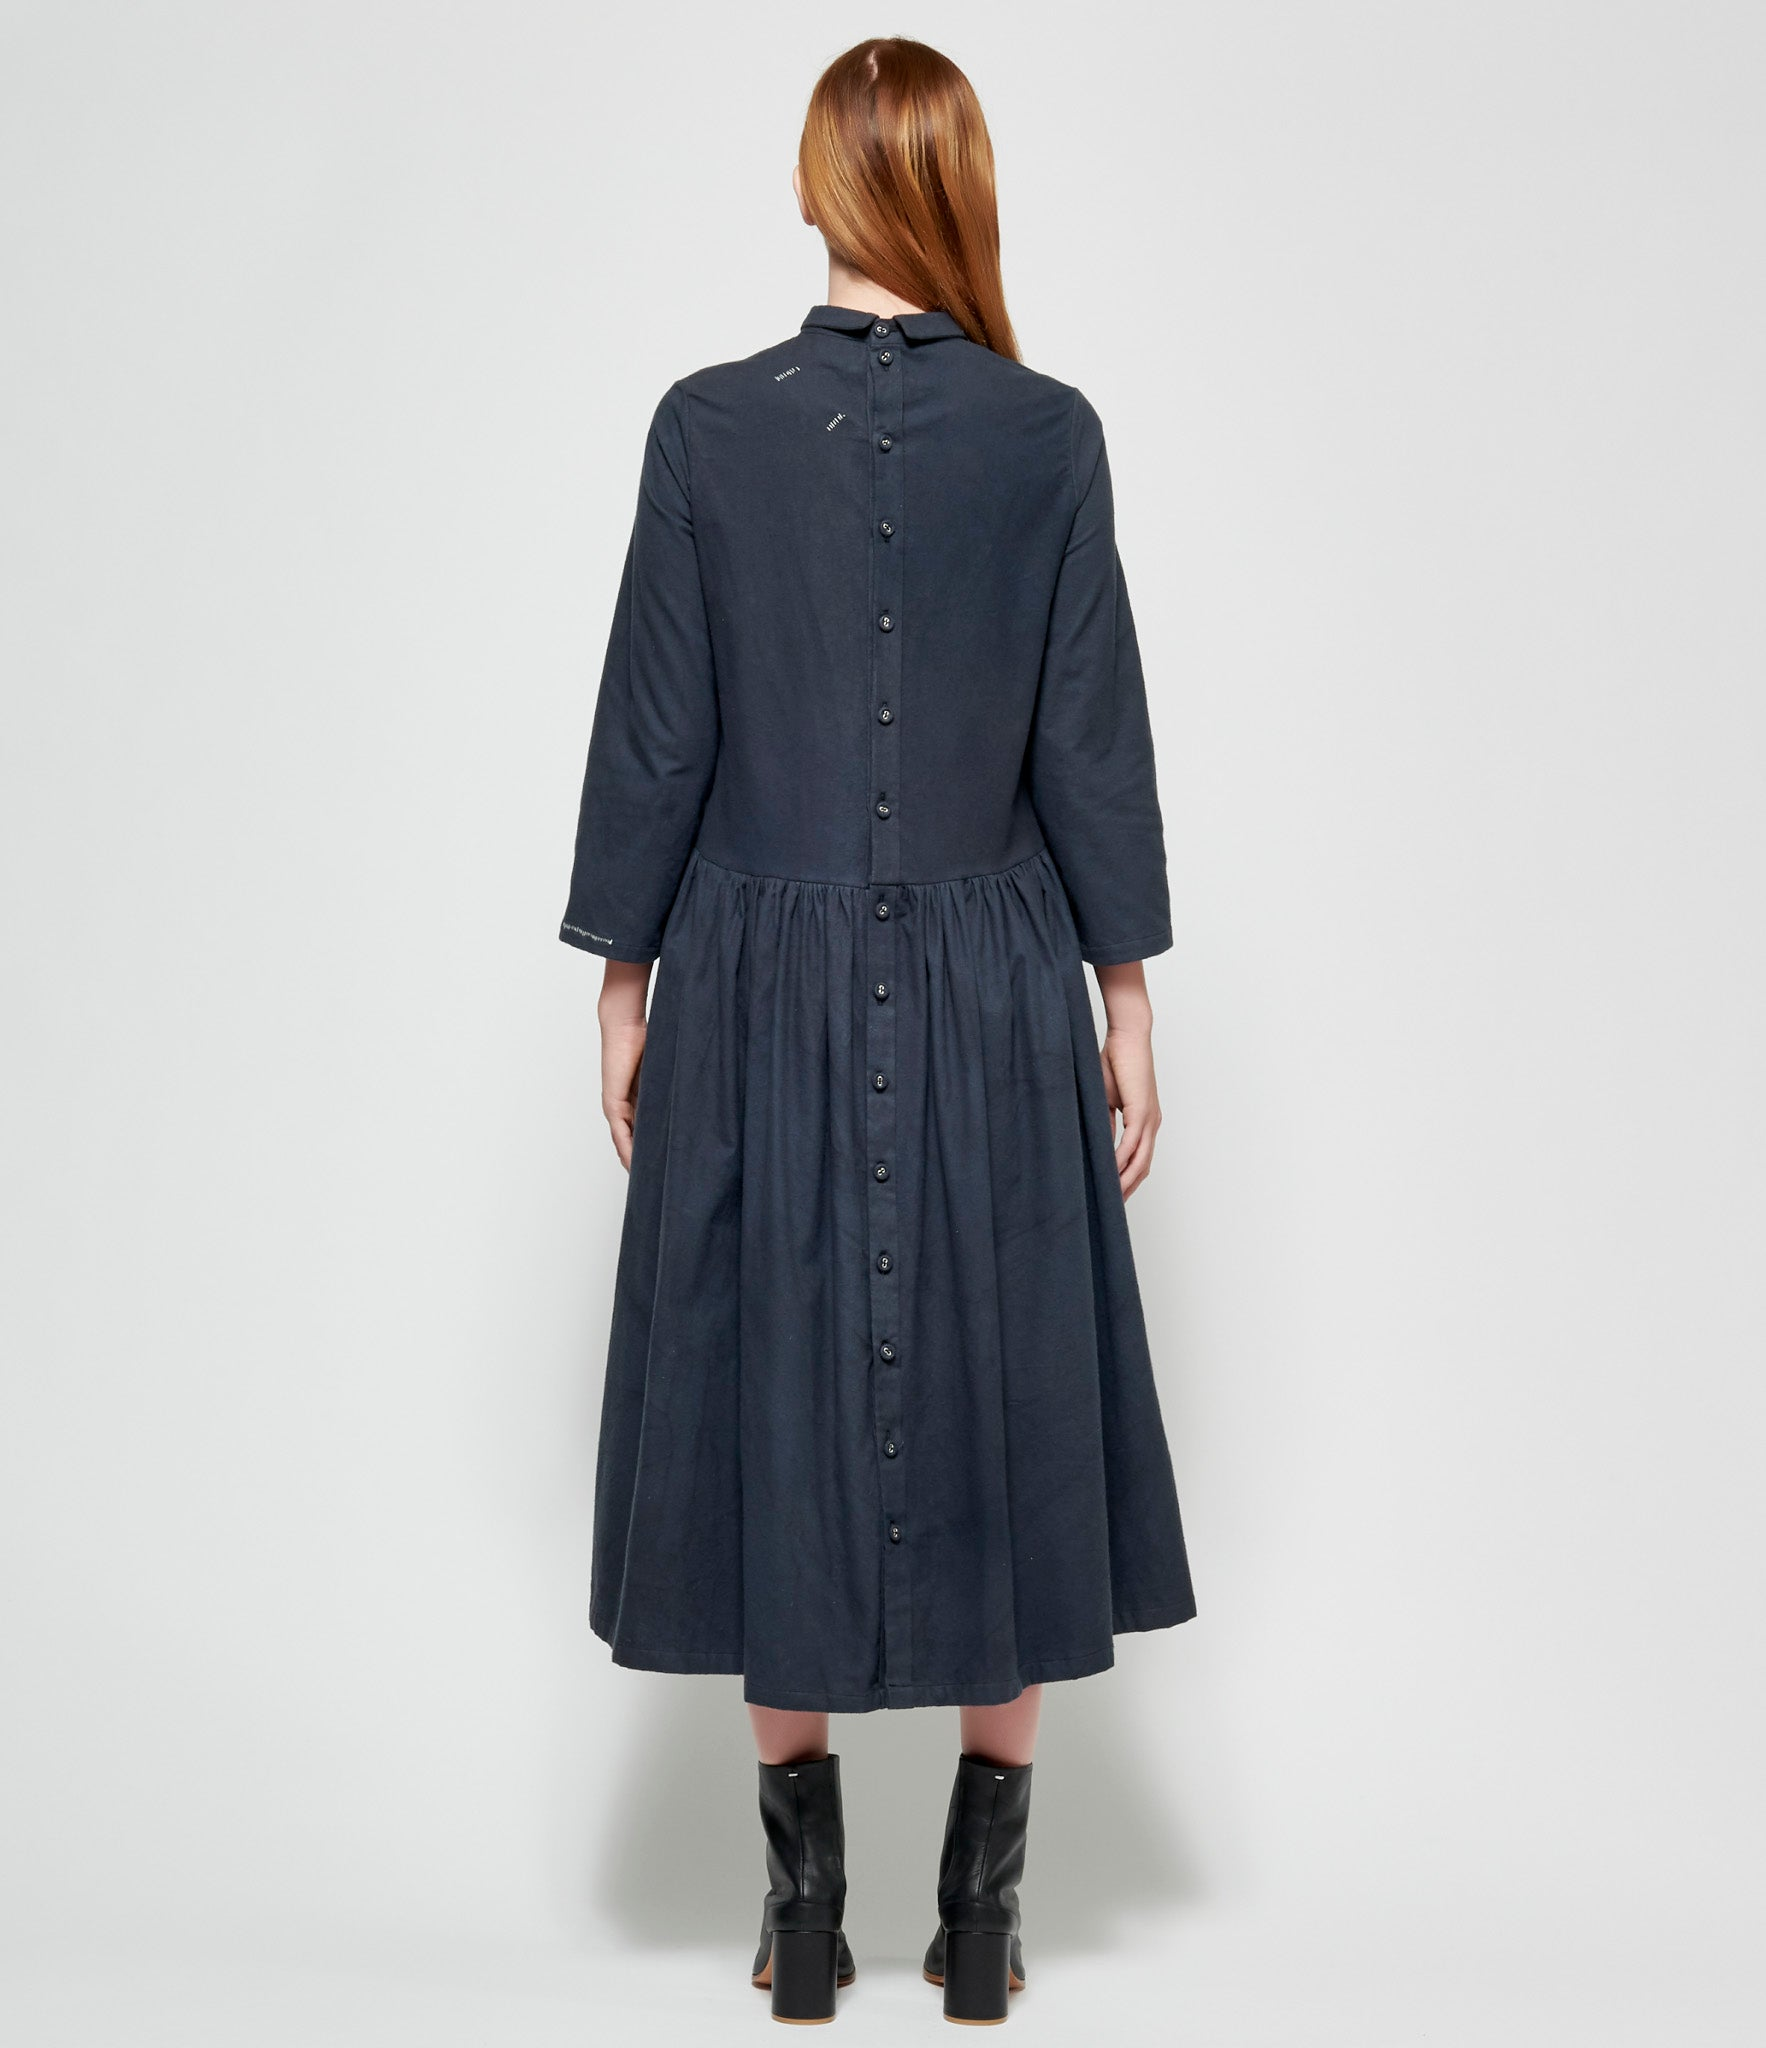 Maria Turri Back Buttoned Dress